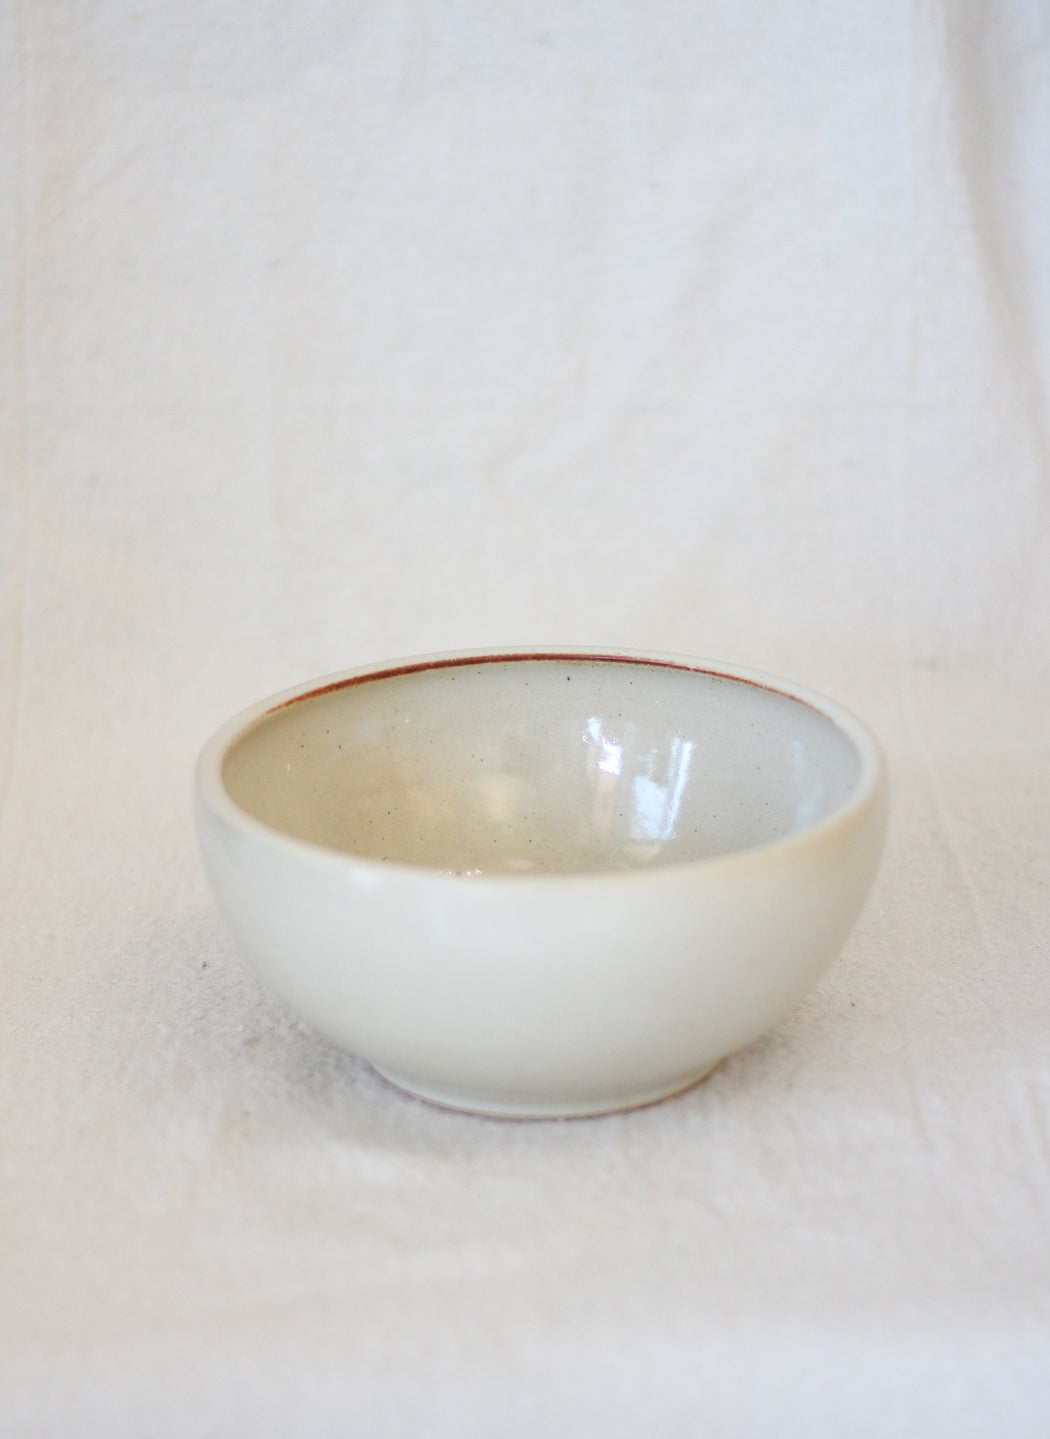 Breakfast Bowl - Speckled Egg Shell